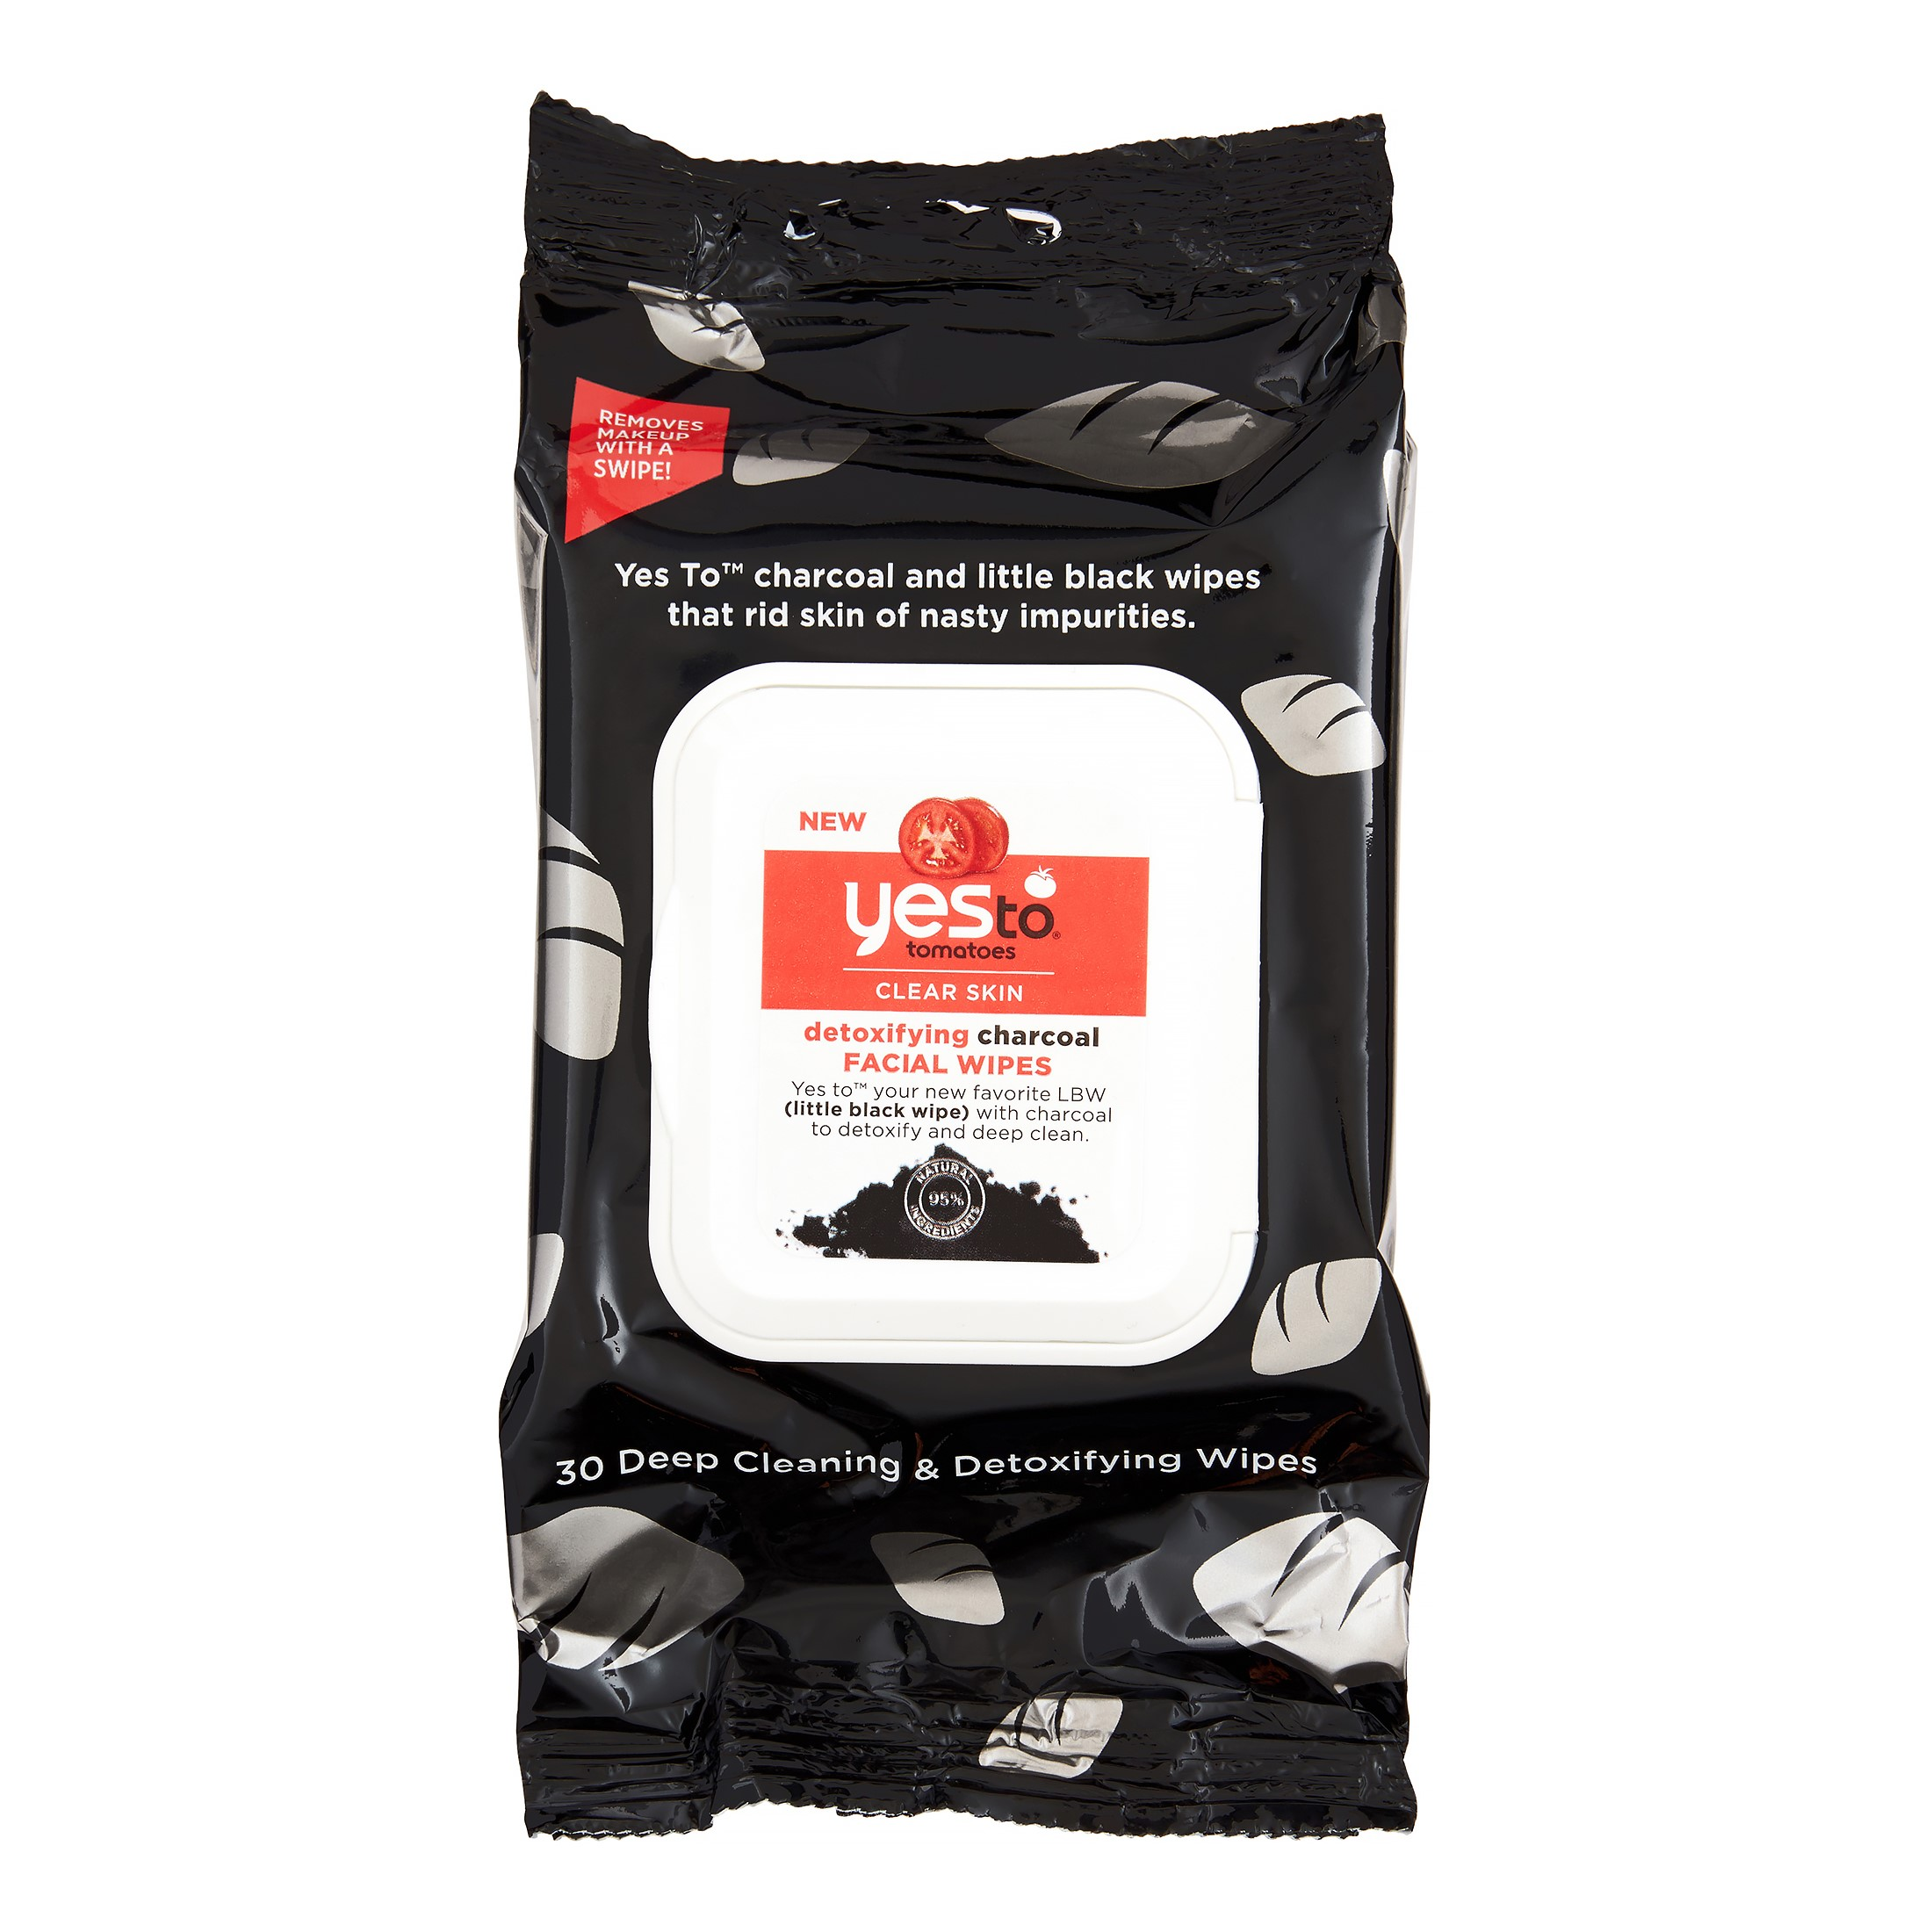 Yes To Tomatoes Detoxifying Charcoal Facial Wipes, 30 Ct